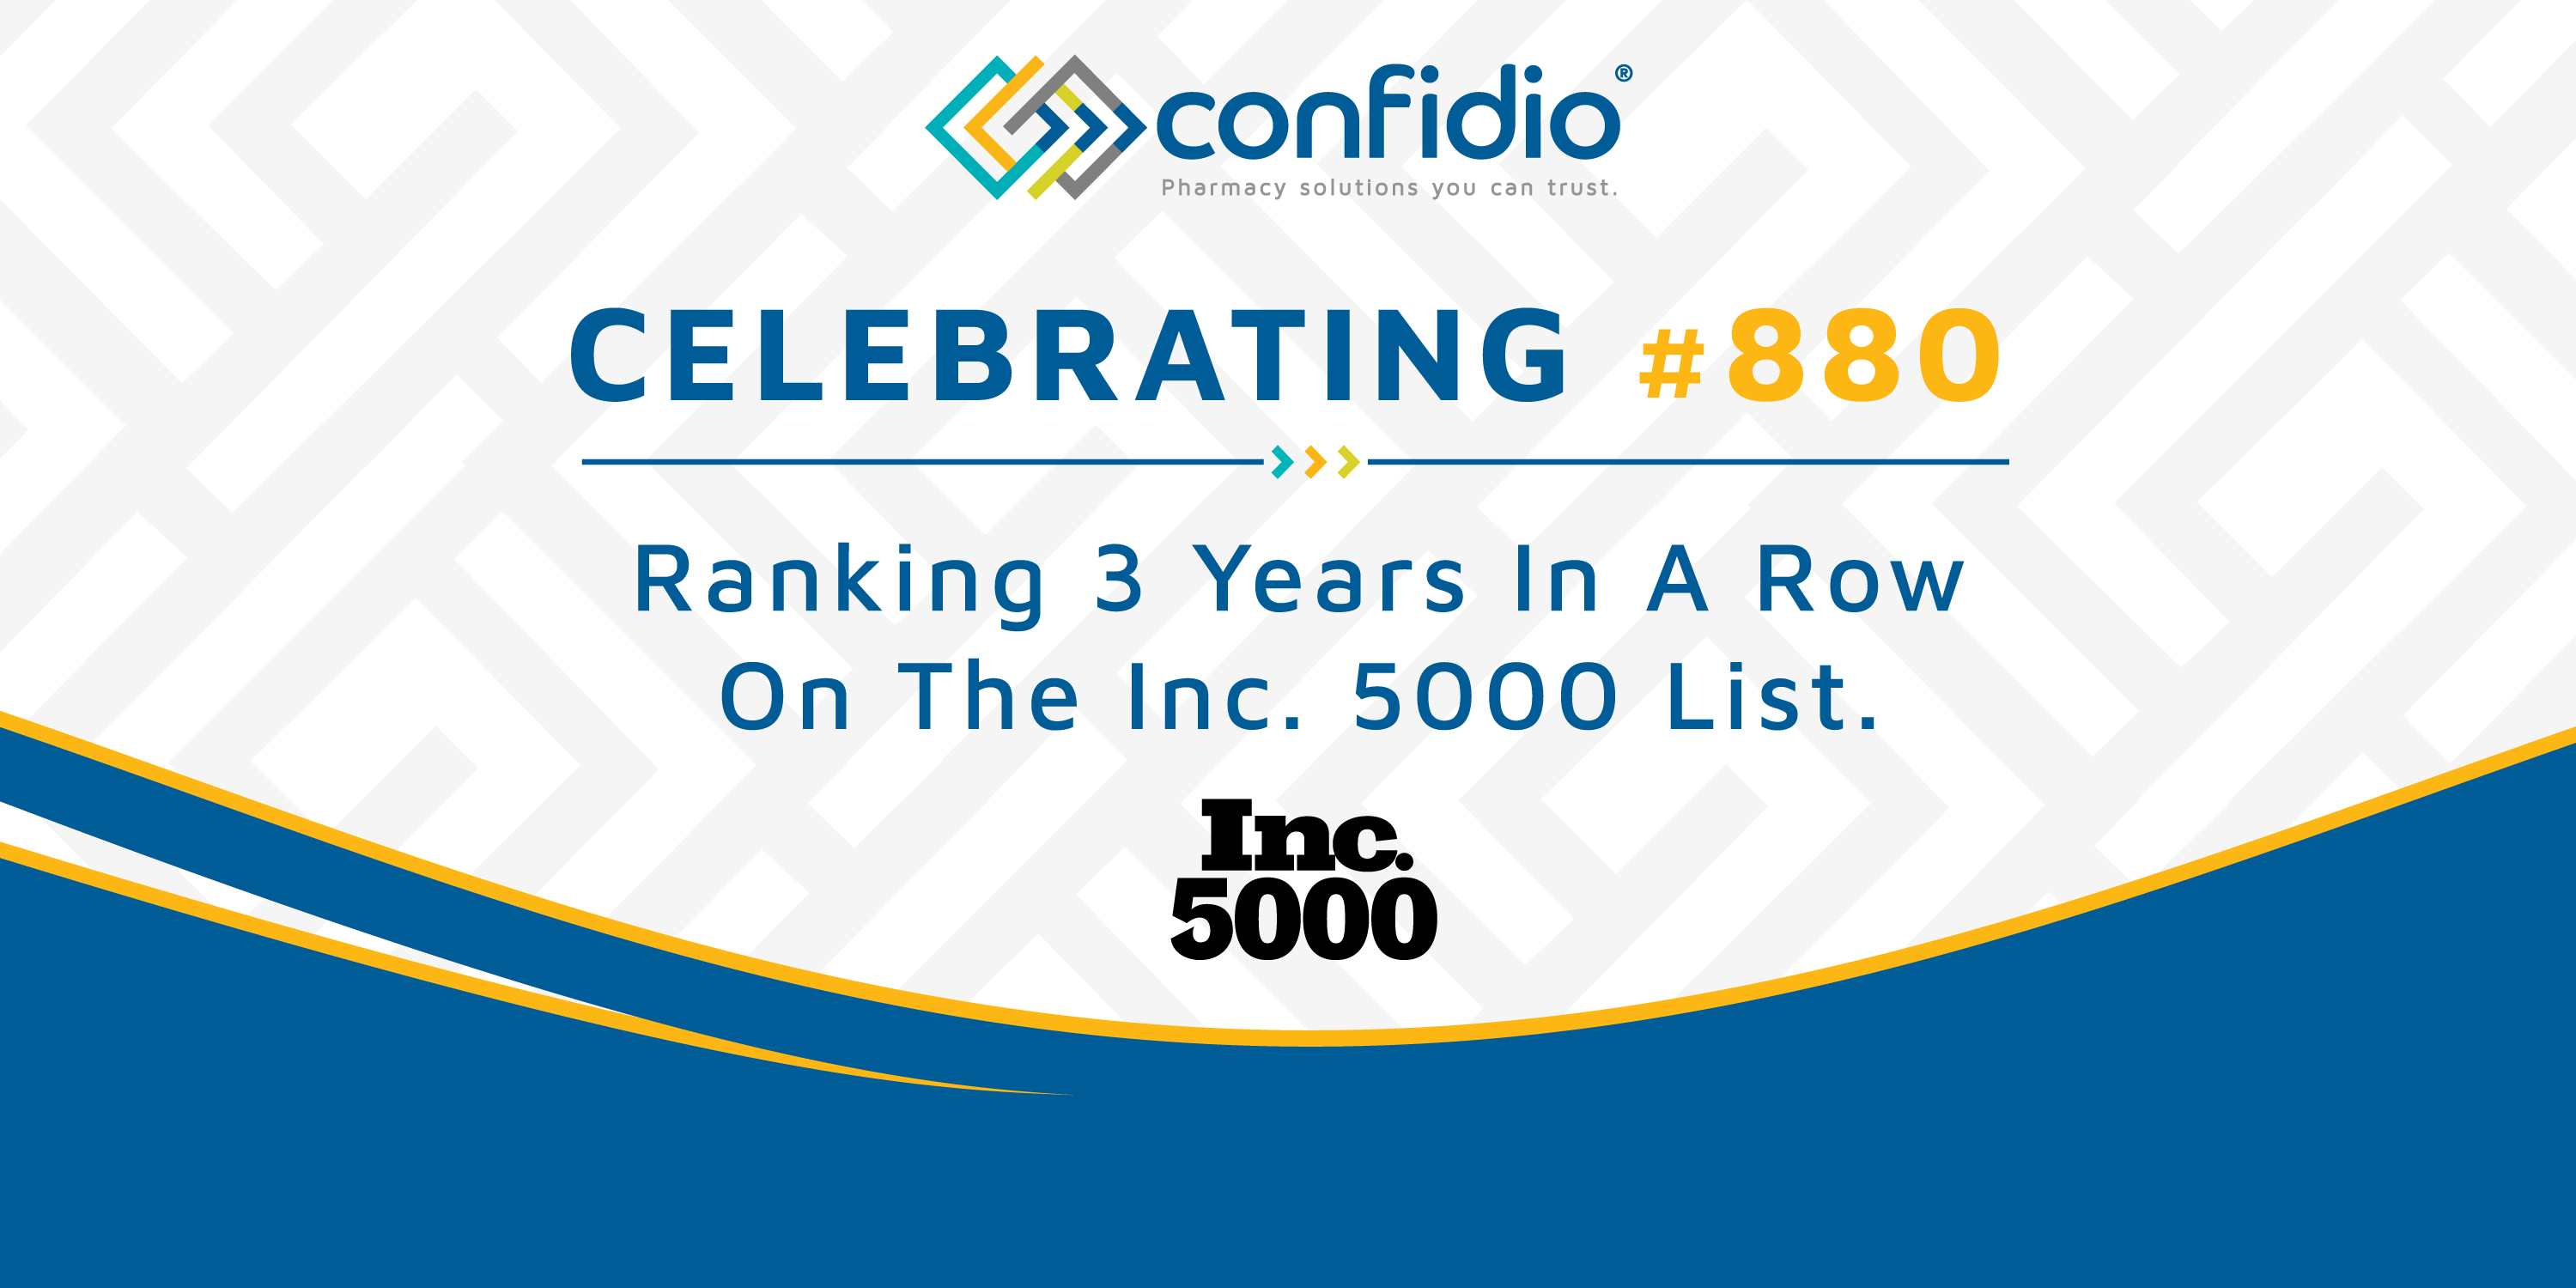 CONFIDIO Ranks No. 880 on the 2021 Inc. 5000 -With a Three-Year Revenue Growth of553%